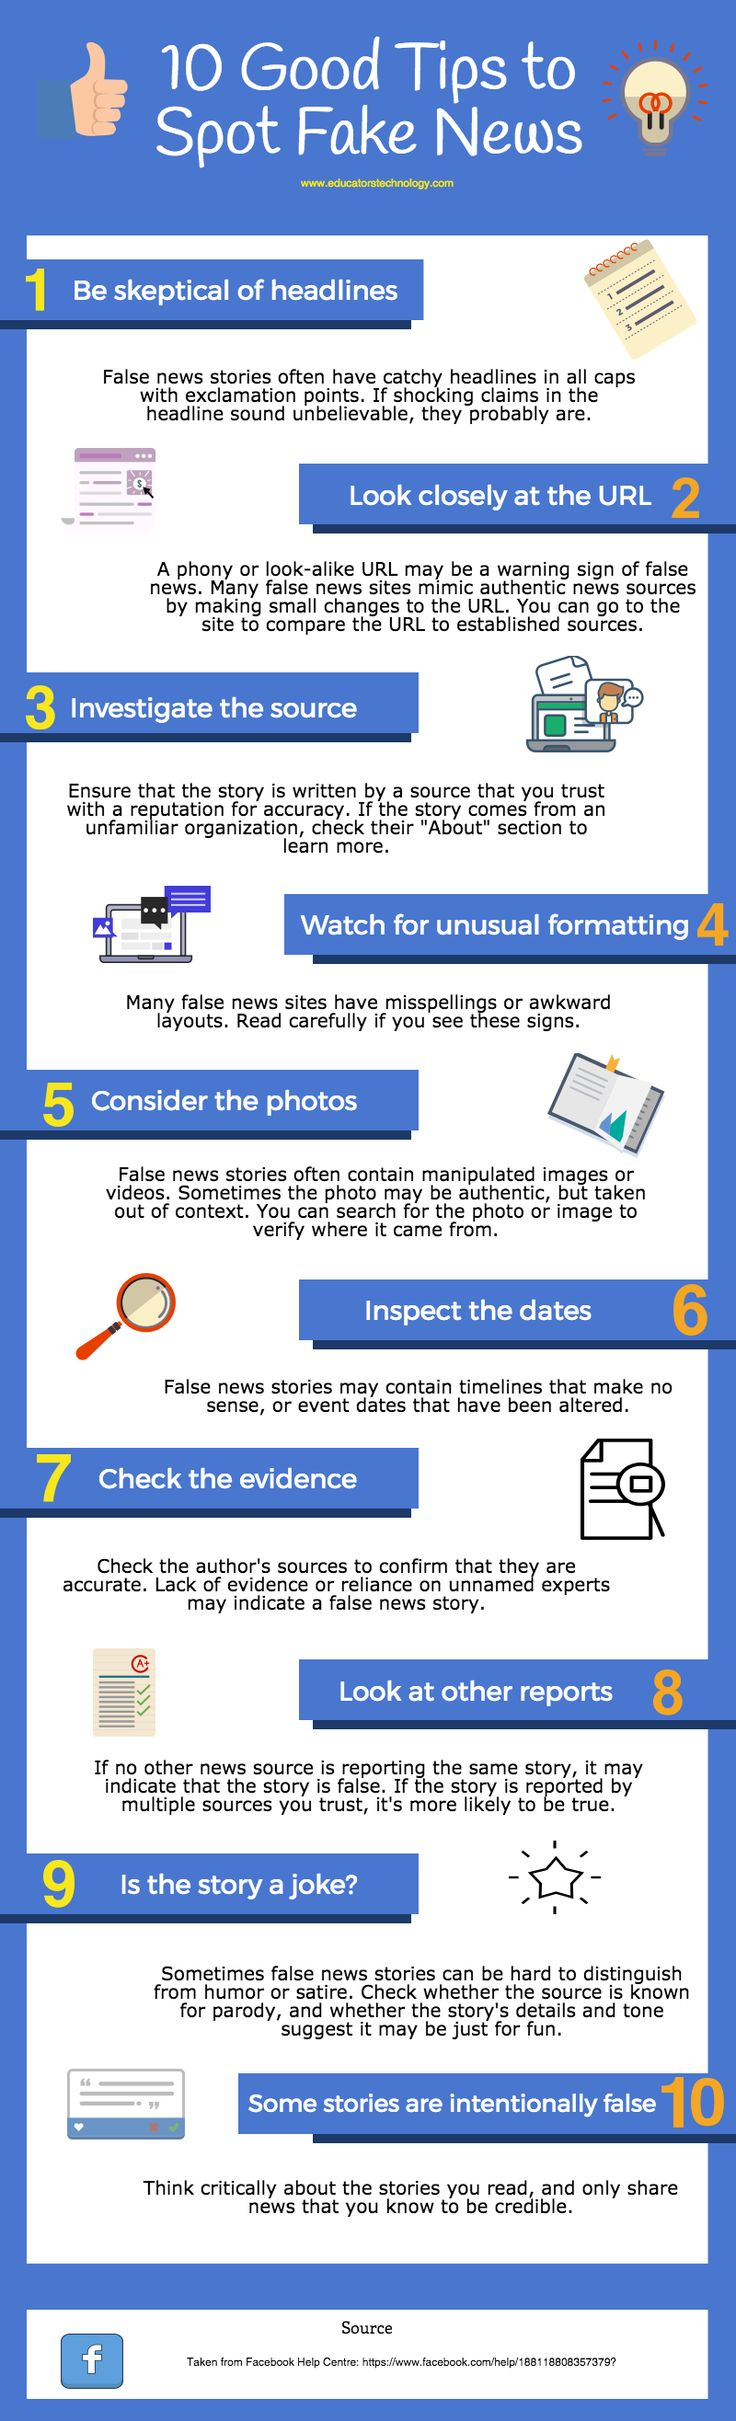 10 Good Tips To Spot Fake News - are you teaching students about fake news?